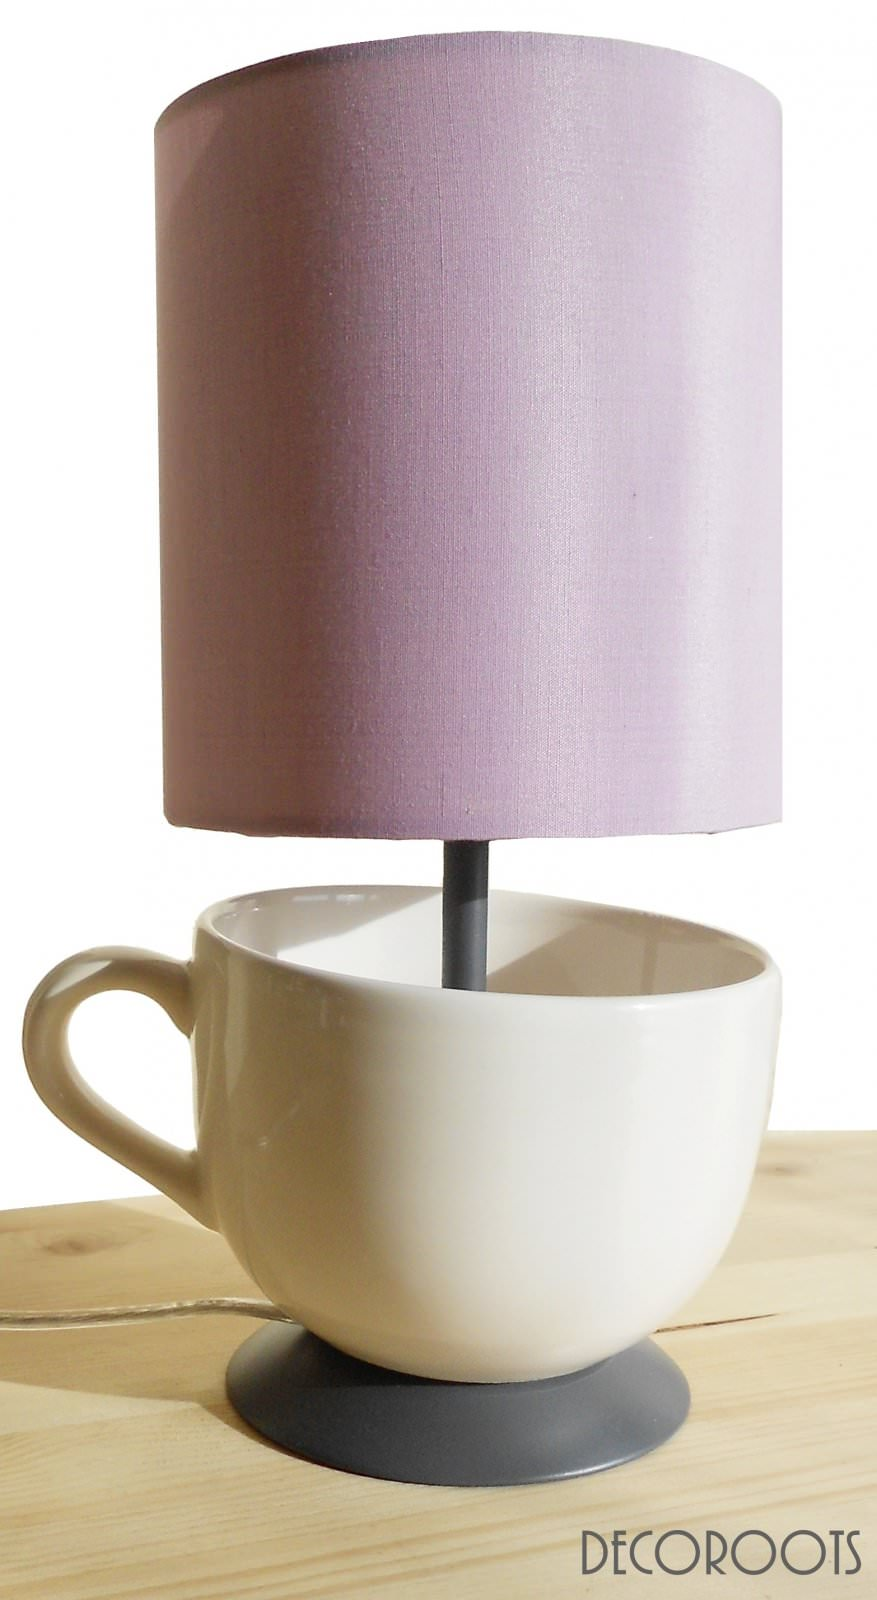 Lampe design tasse un peu de th design contemporain for Lampe pour eclairer un tableau